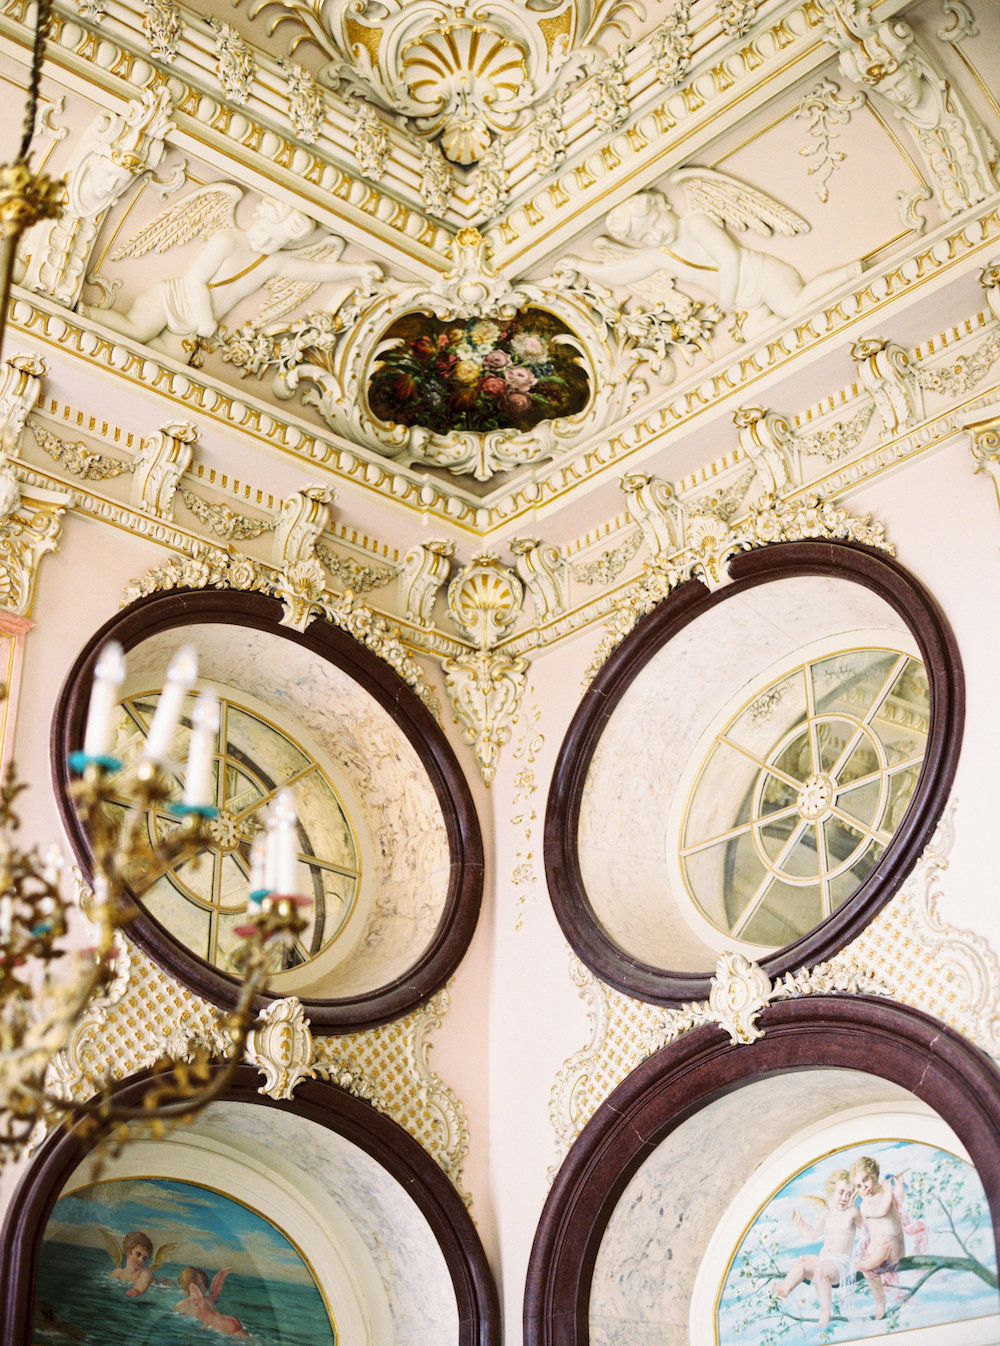 London Wedding Invitations ceiling detail from inside a palace in Portugal